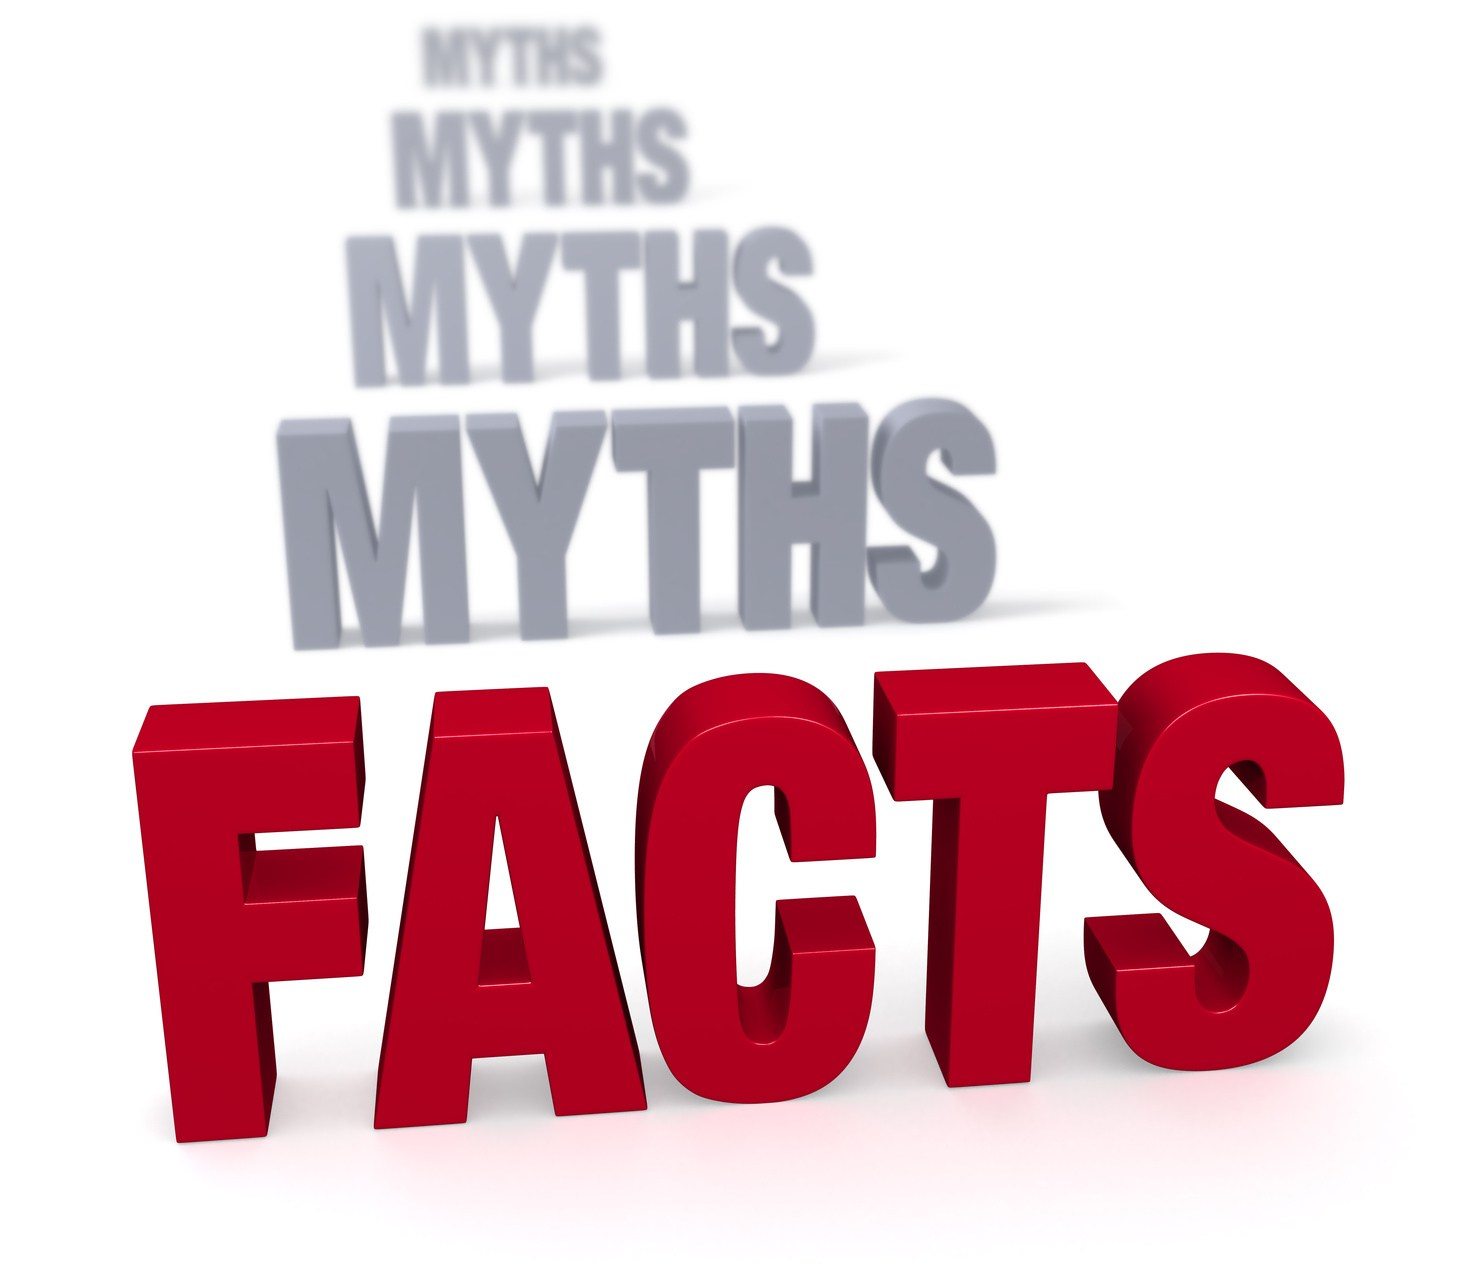 There are a lot of myths regarding pension schemes and advisors, It's time to put the facts first.